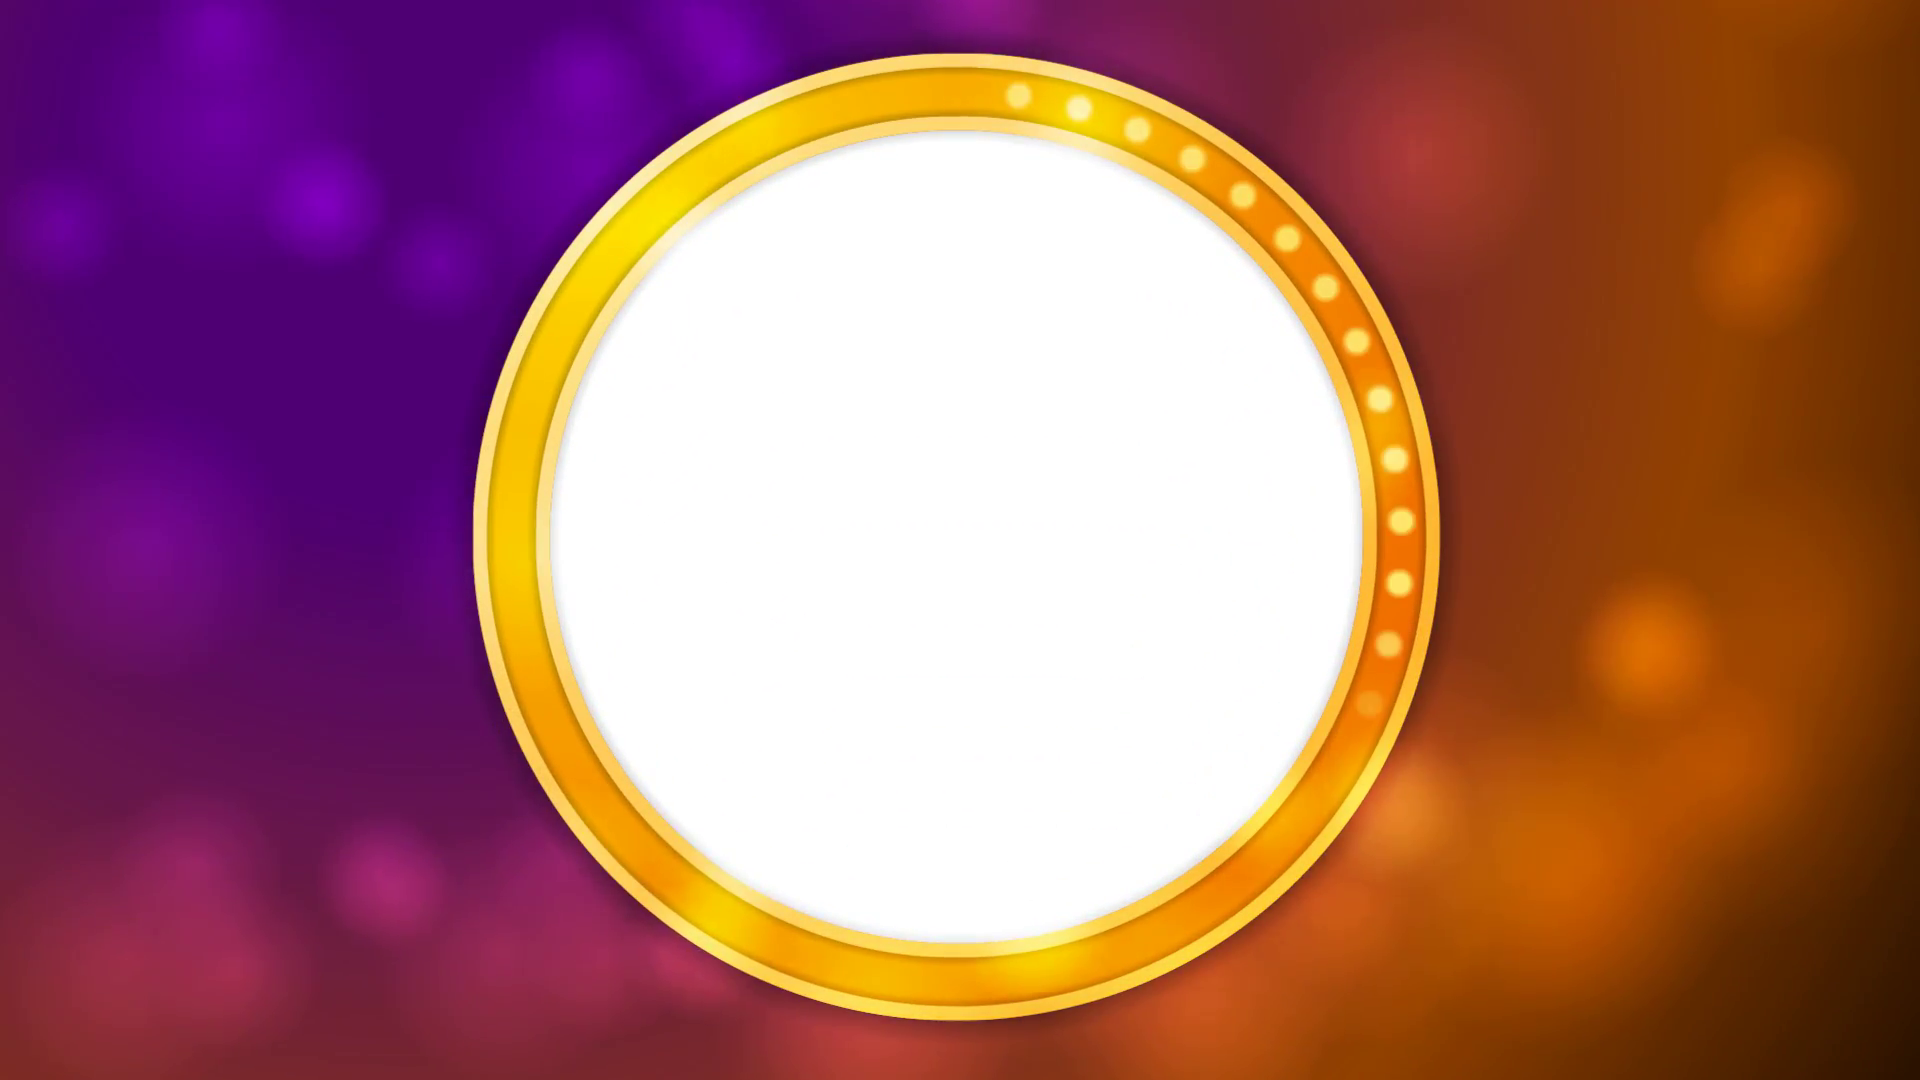 Retro shiny light circle banner design. Video animation HD 1920x1080 Motion  Background - VideoBlocks - PNG HD Banner